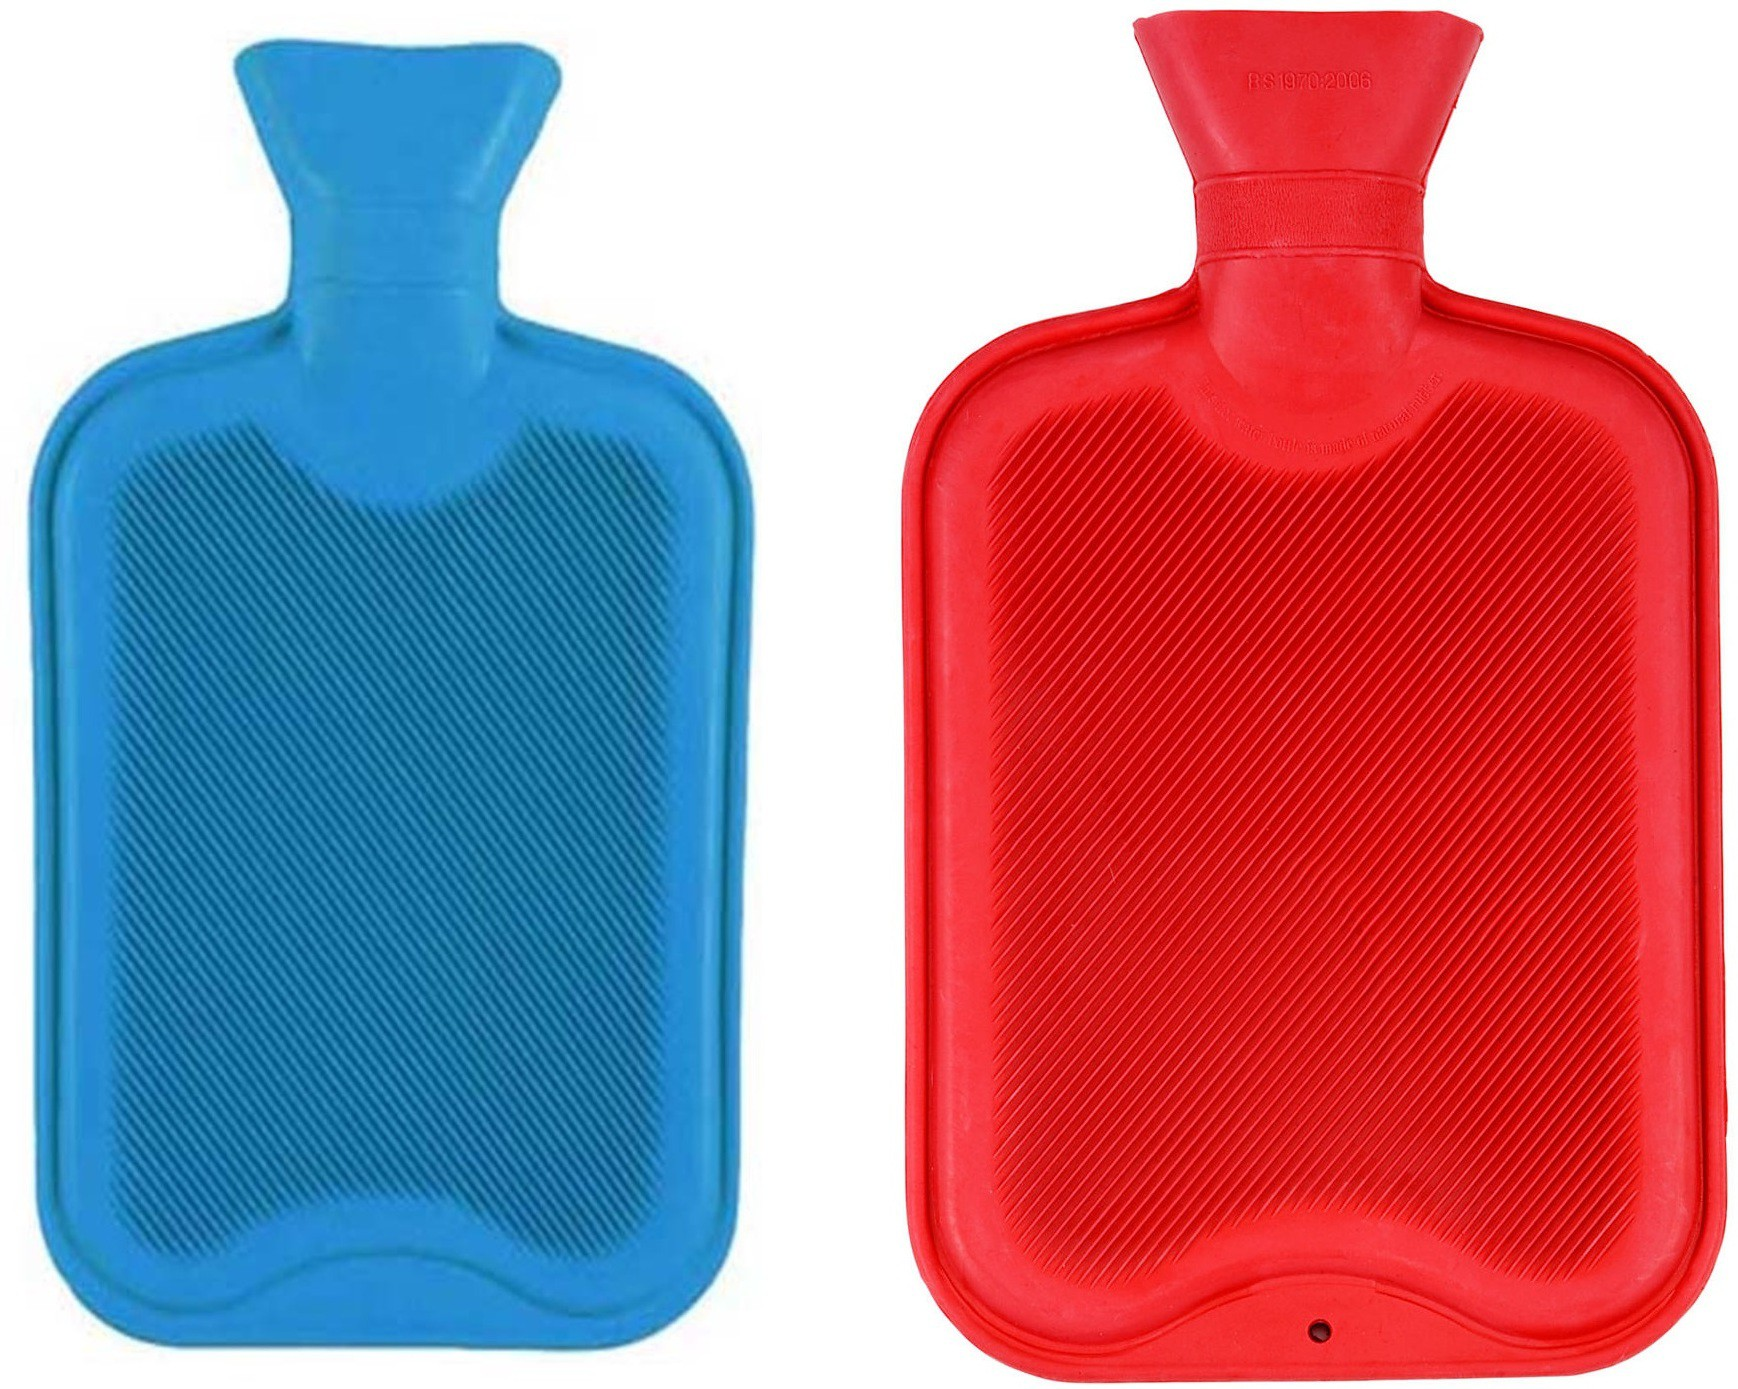 Bruzone Pain Comfort Combos Non-electrical 3 L Hot Water Bag(Blue, Red)